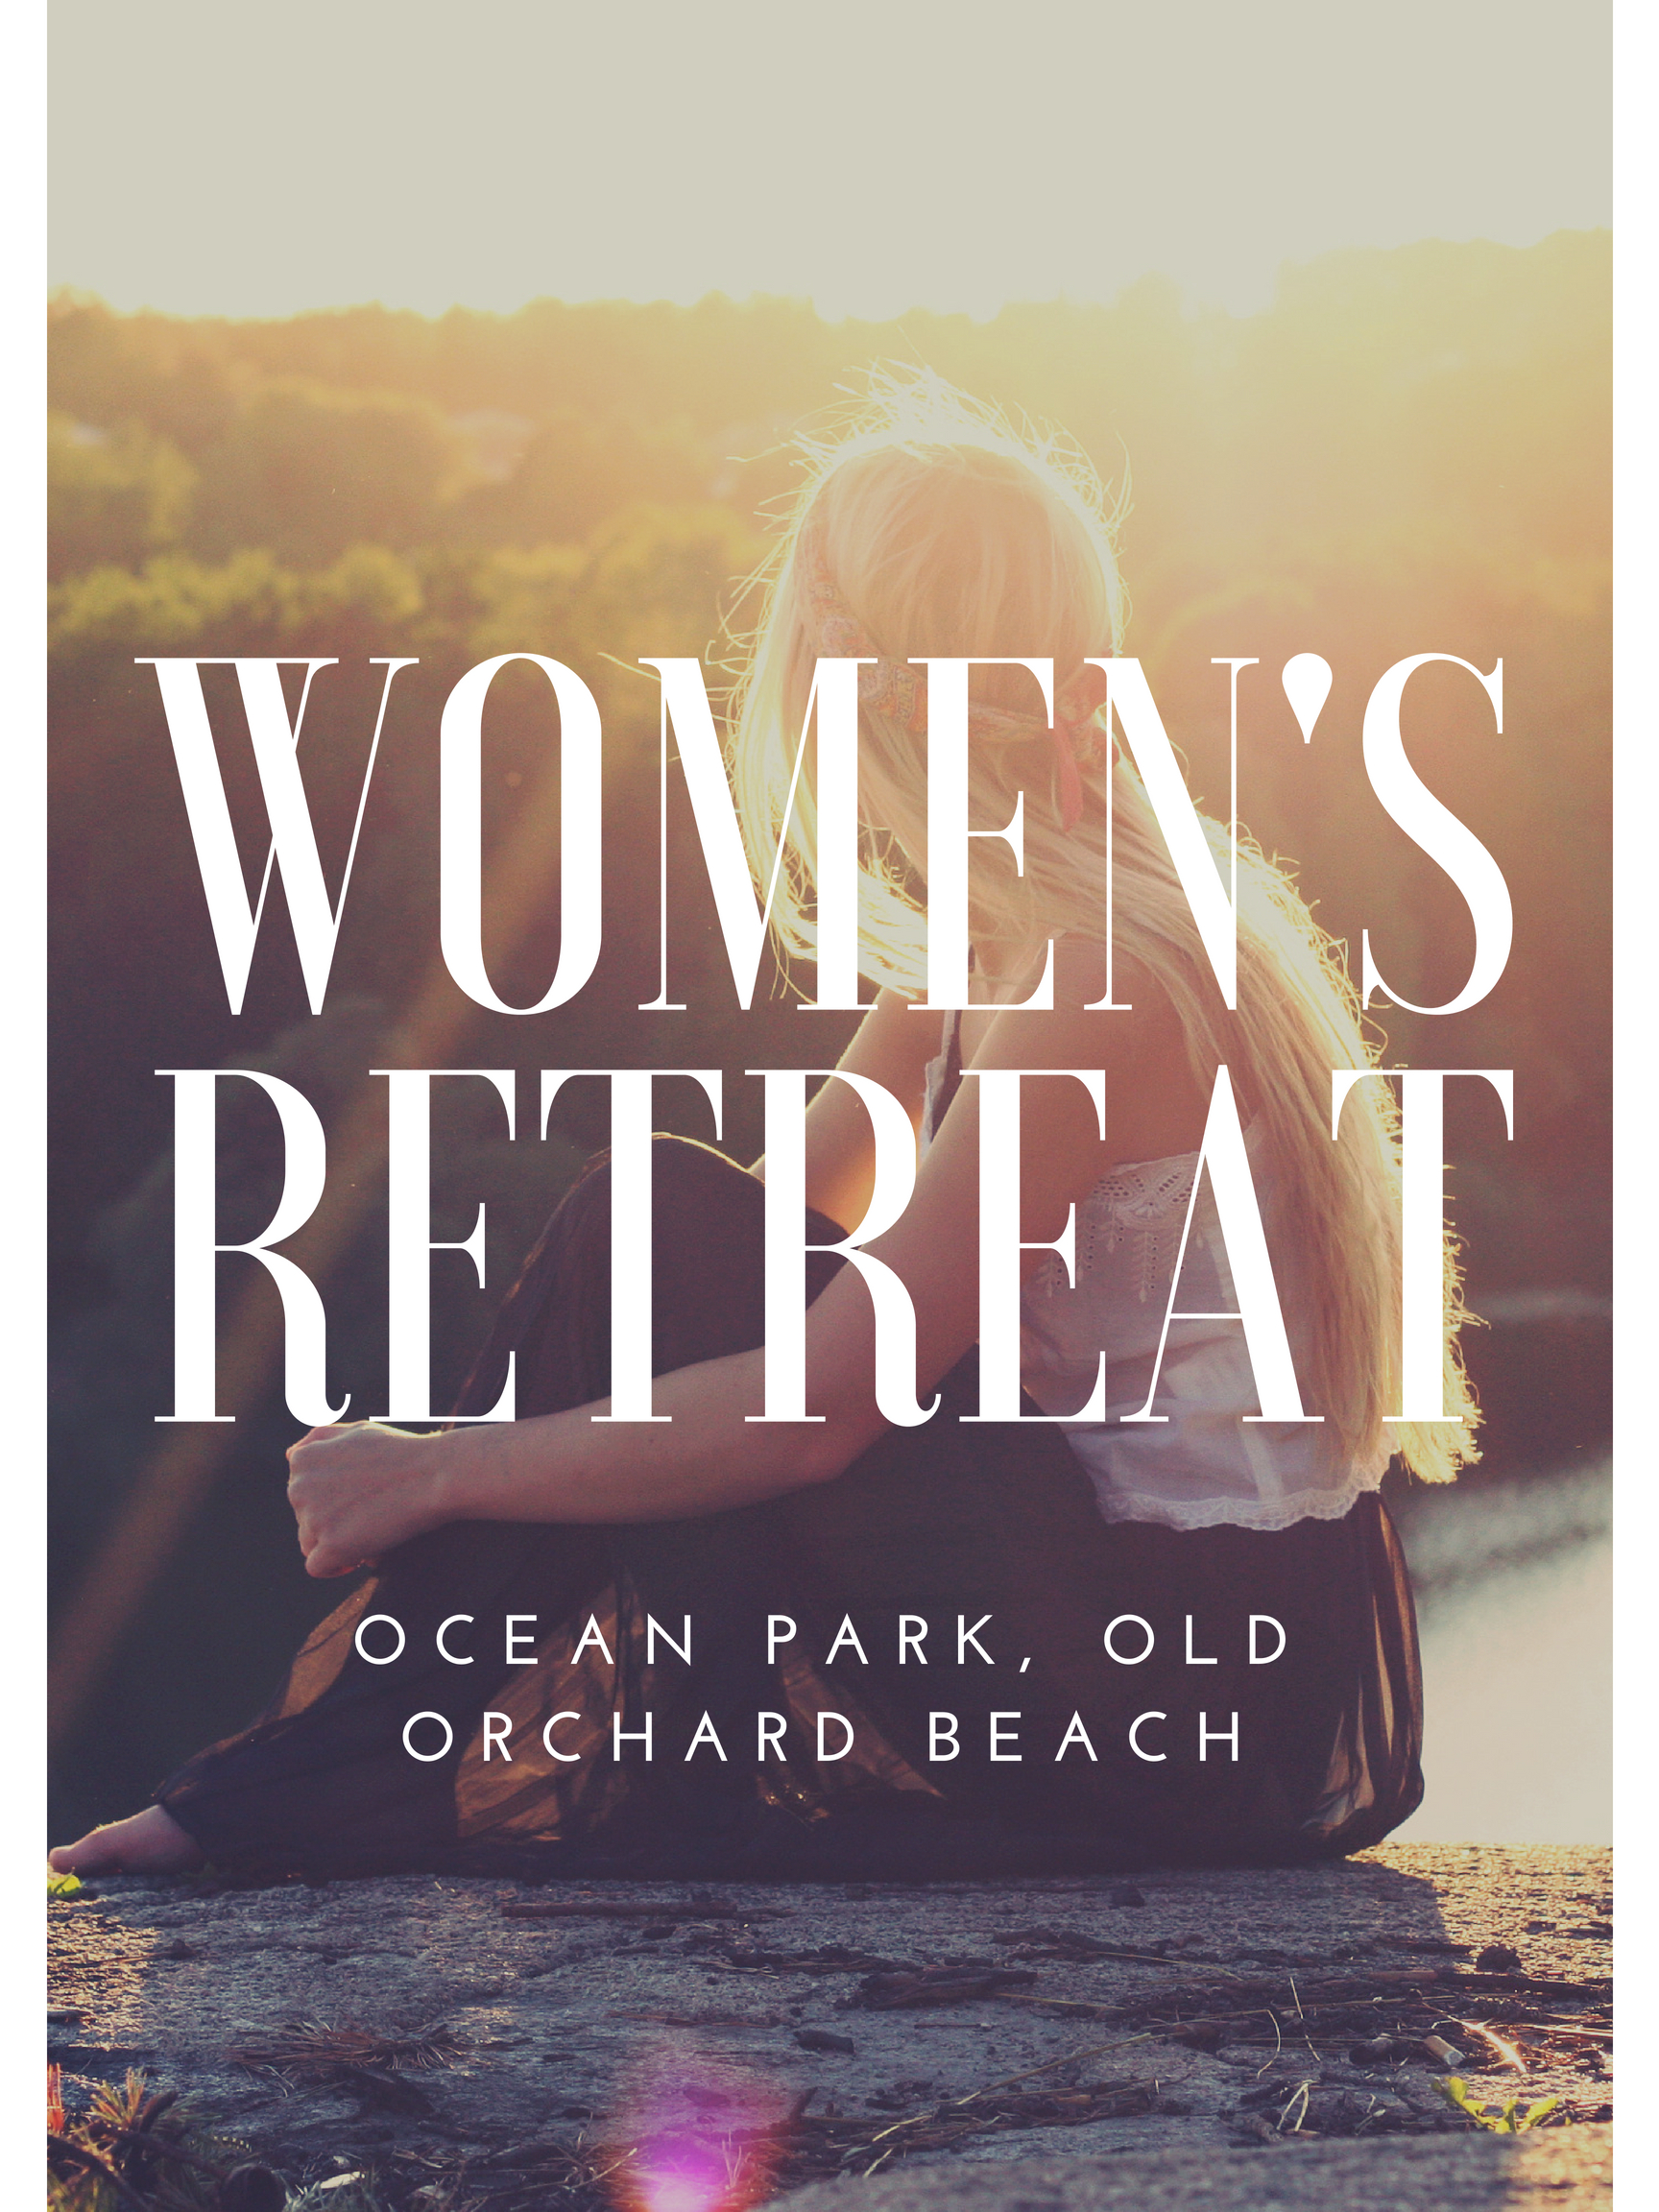 Women'sretreat image